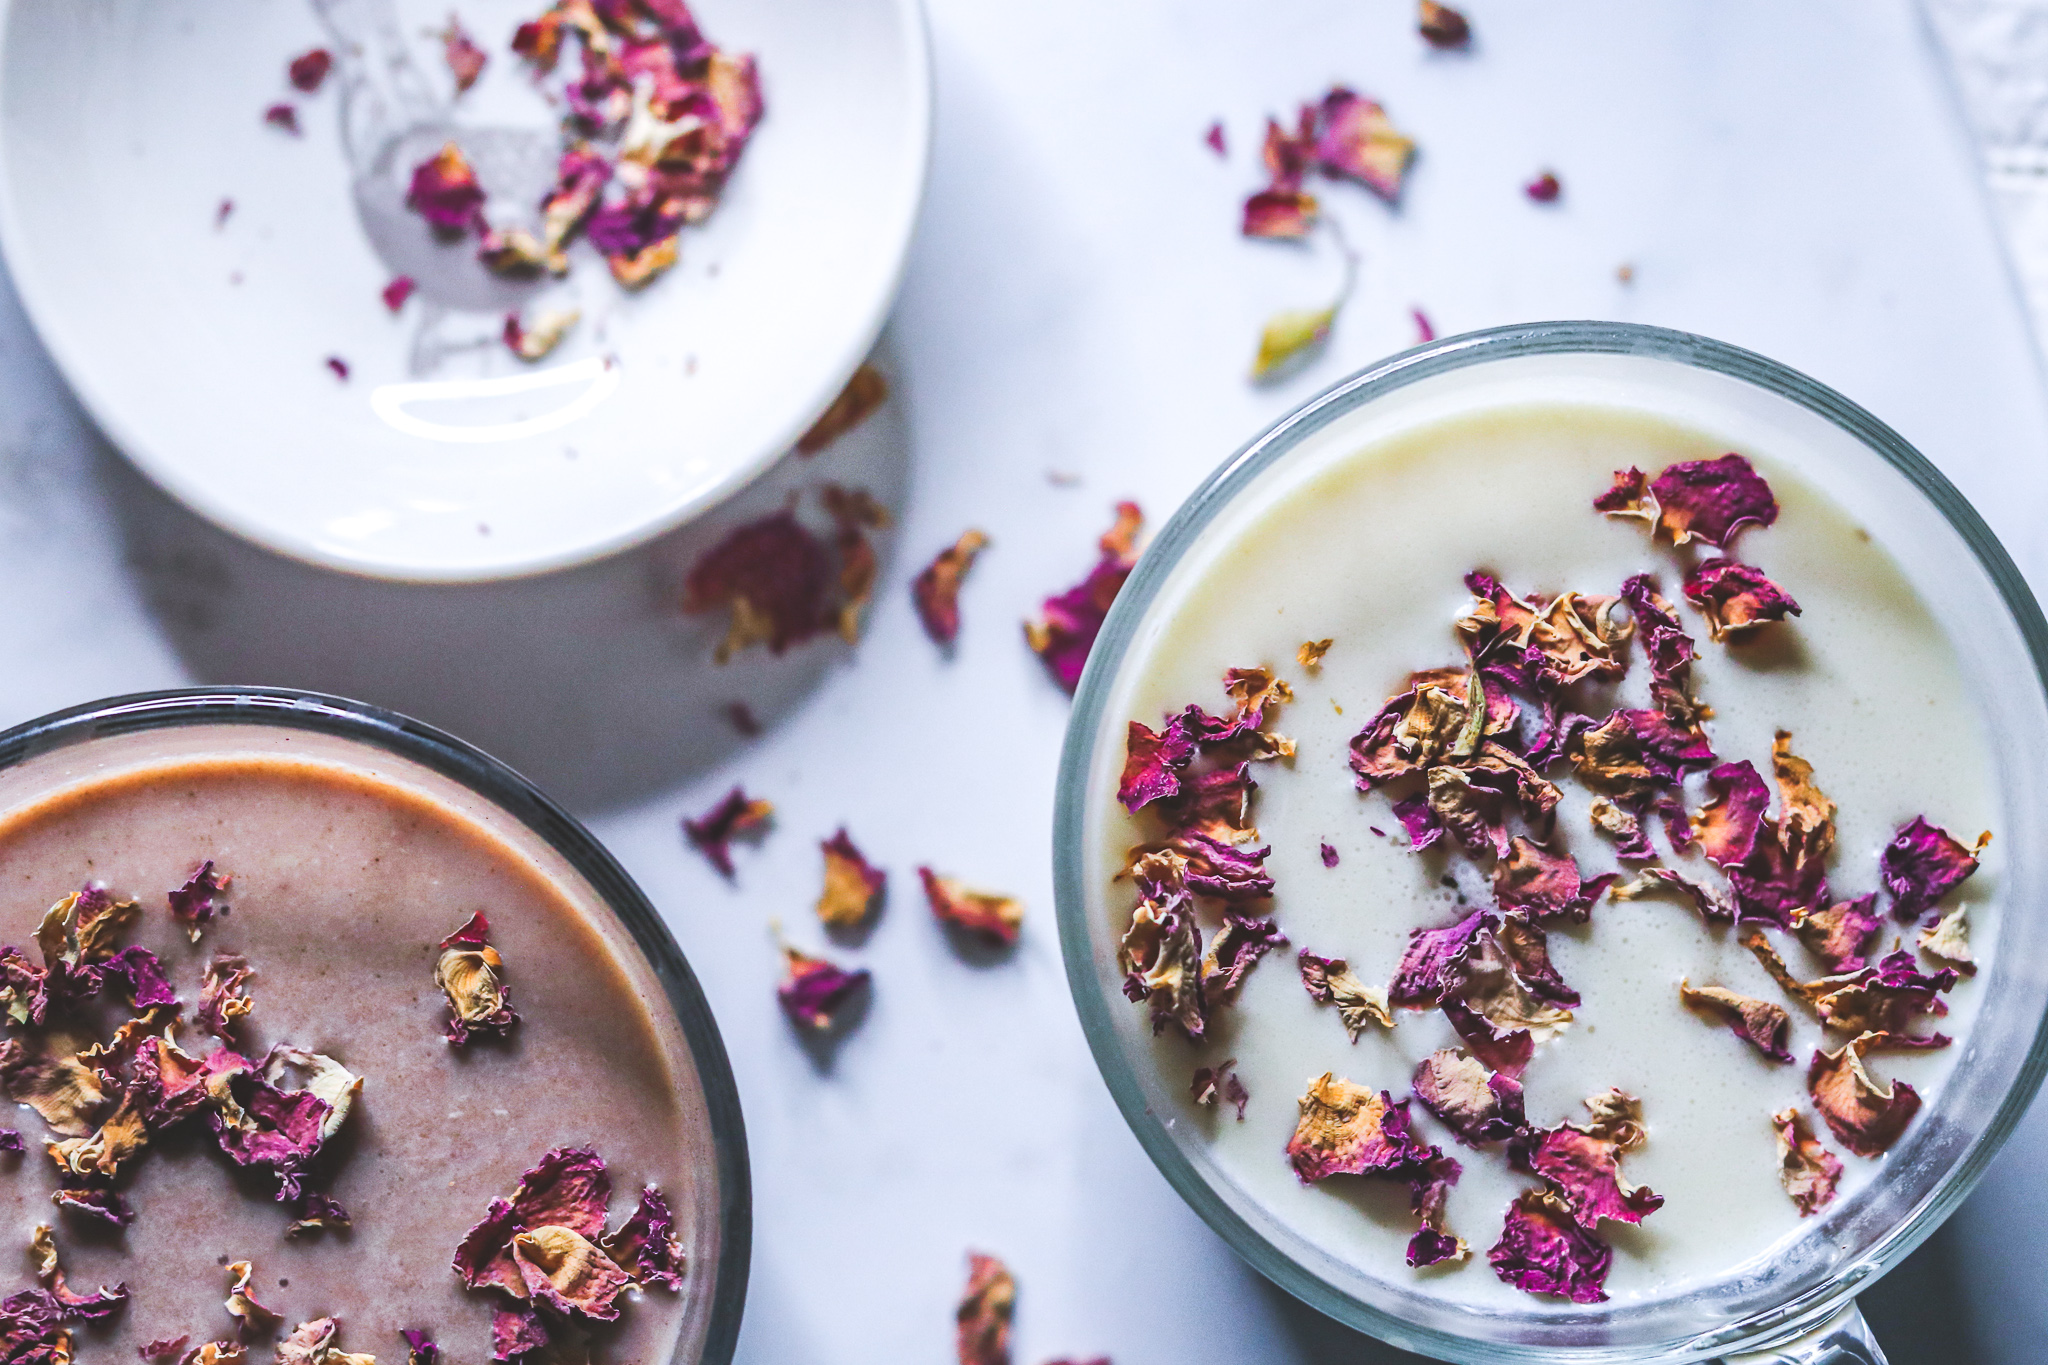 Rose and cardamom infused hot chocolate recipe